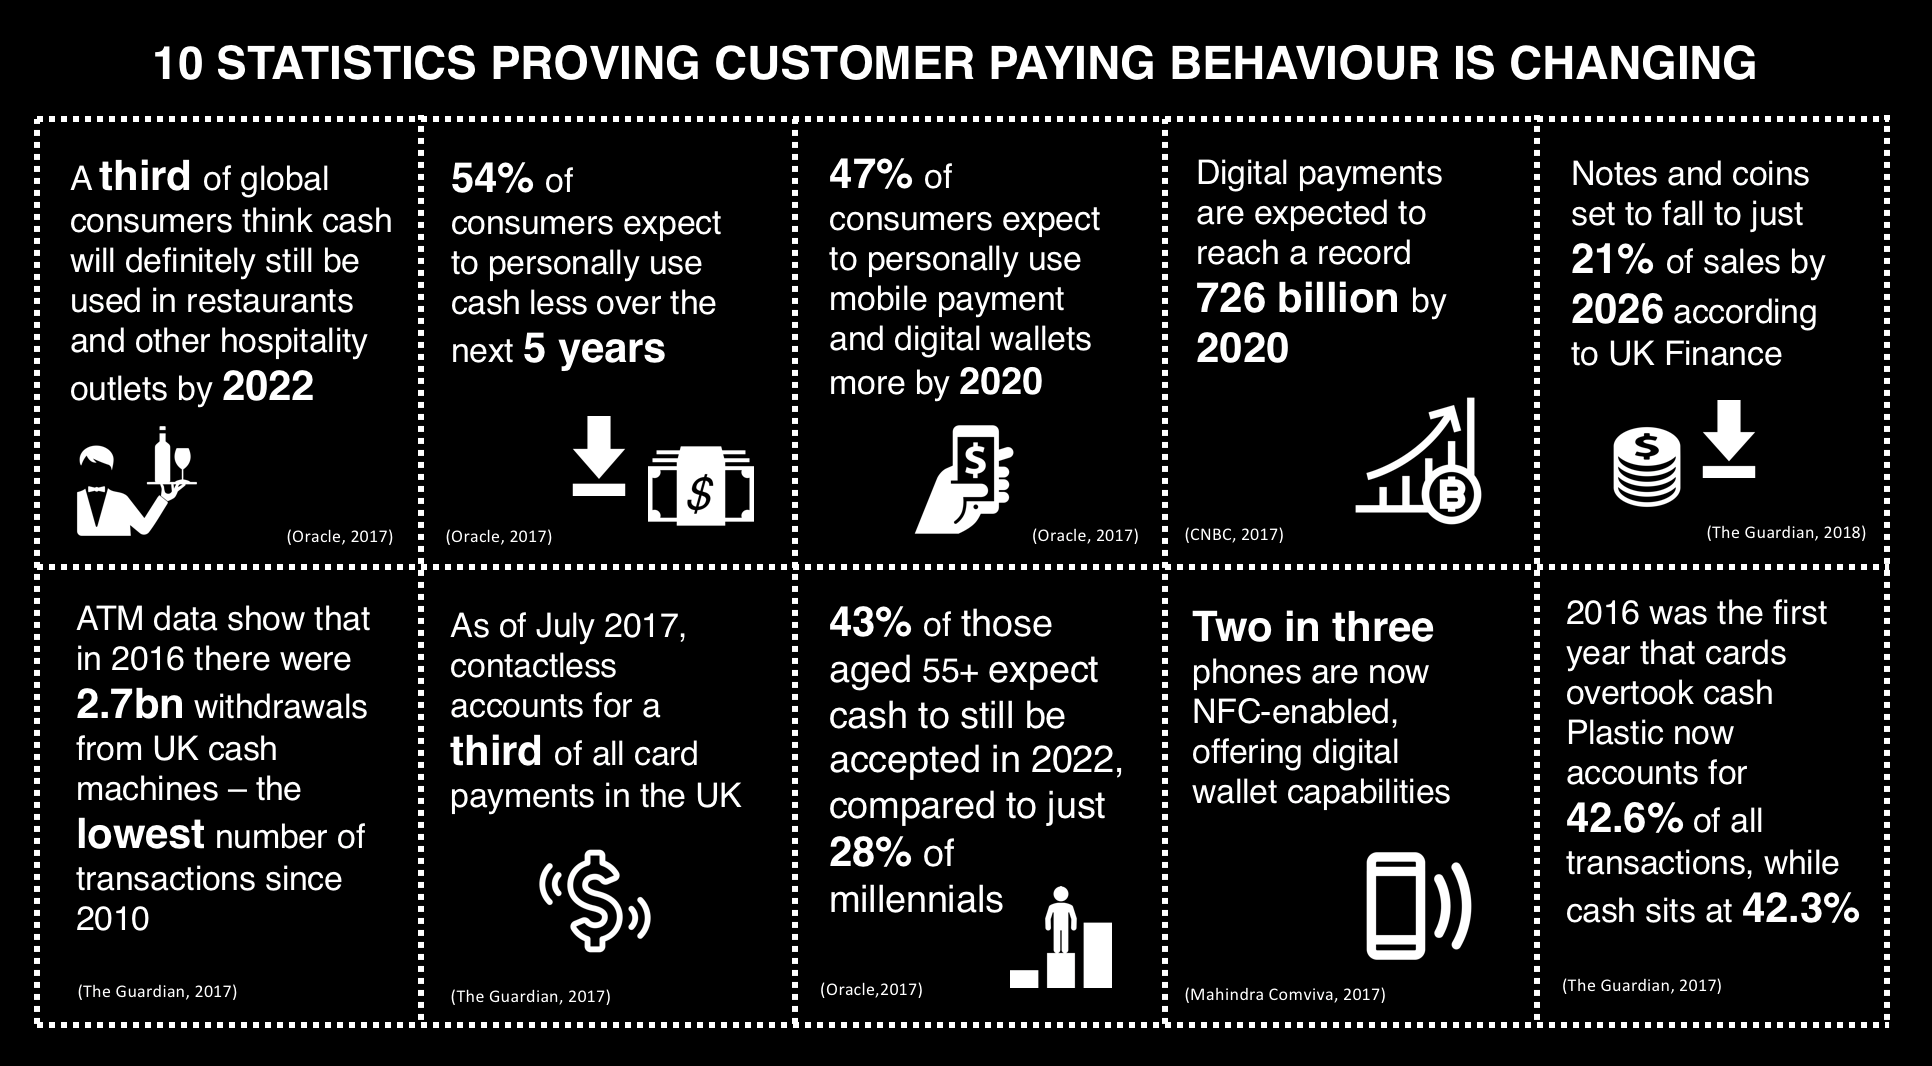 10 statistics proving customer paying behaviour is changing